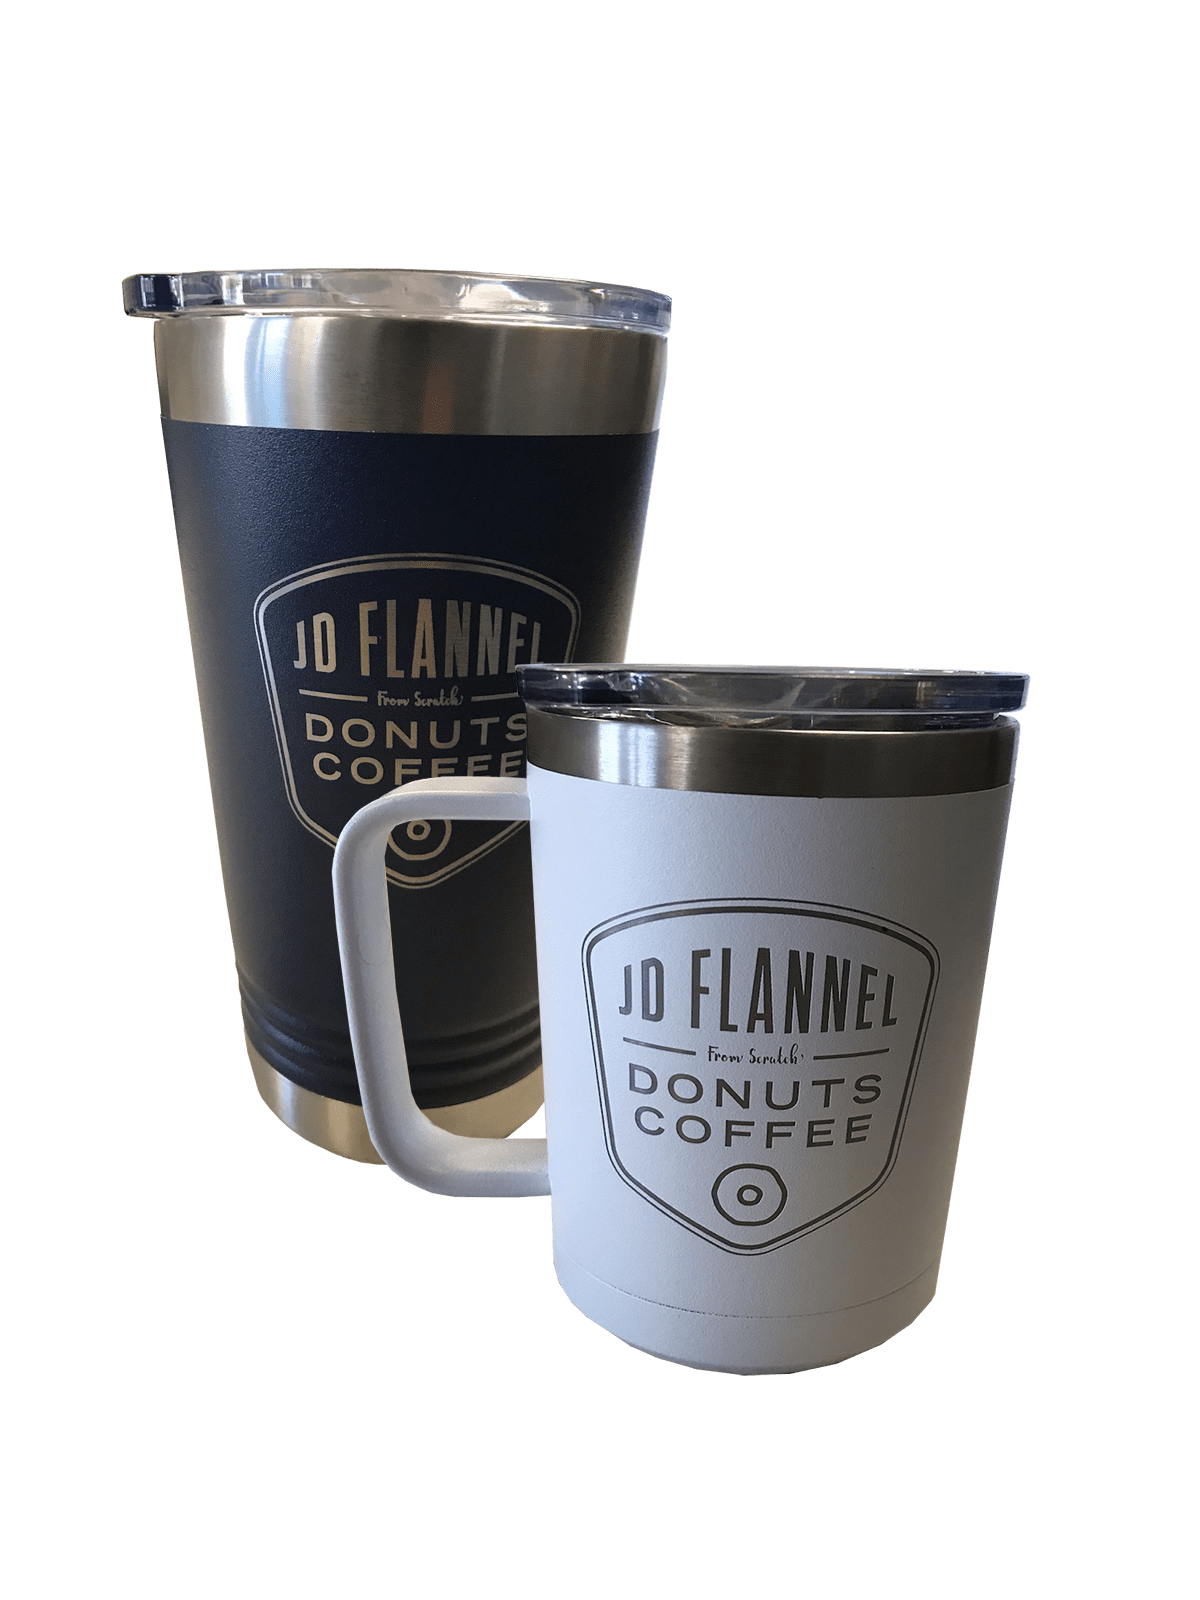 custom printed cups and mugs for coffee shops and bakeries